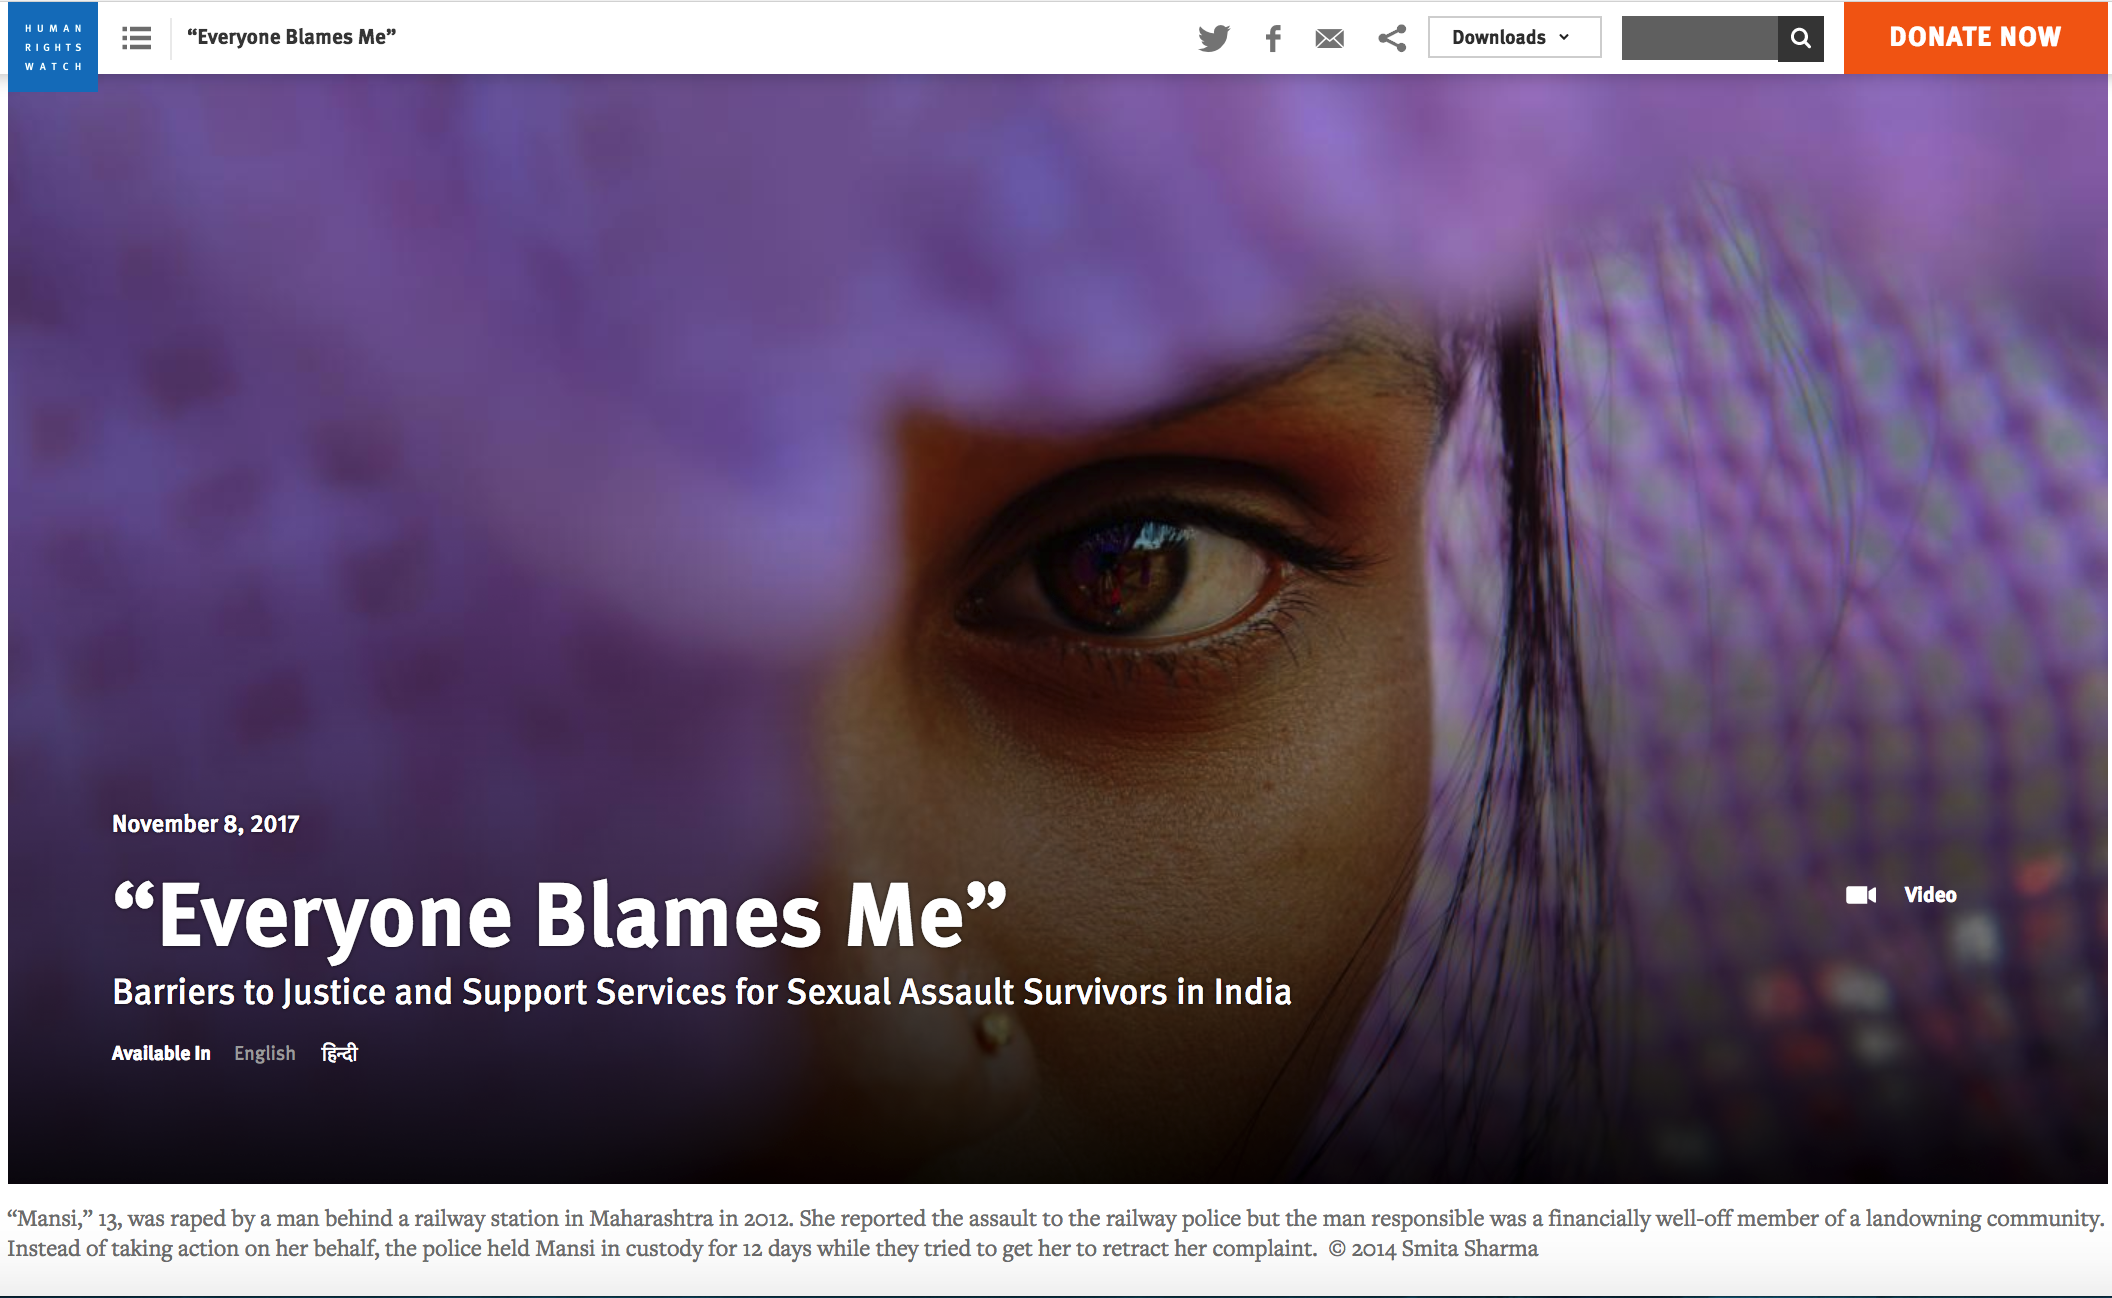 https://www.hrw.org/report/2017/11/08/everyone-blames-me/barriers-justice-and-support-services-sexual-assault-survivors